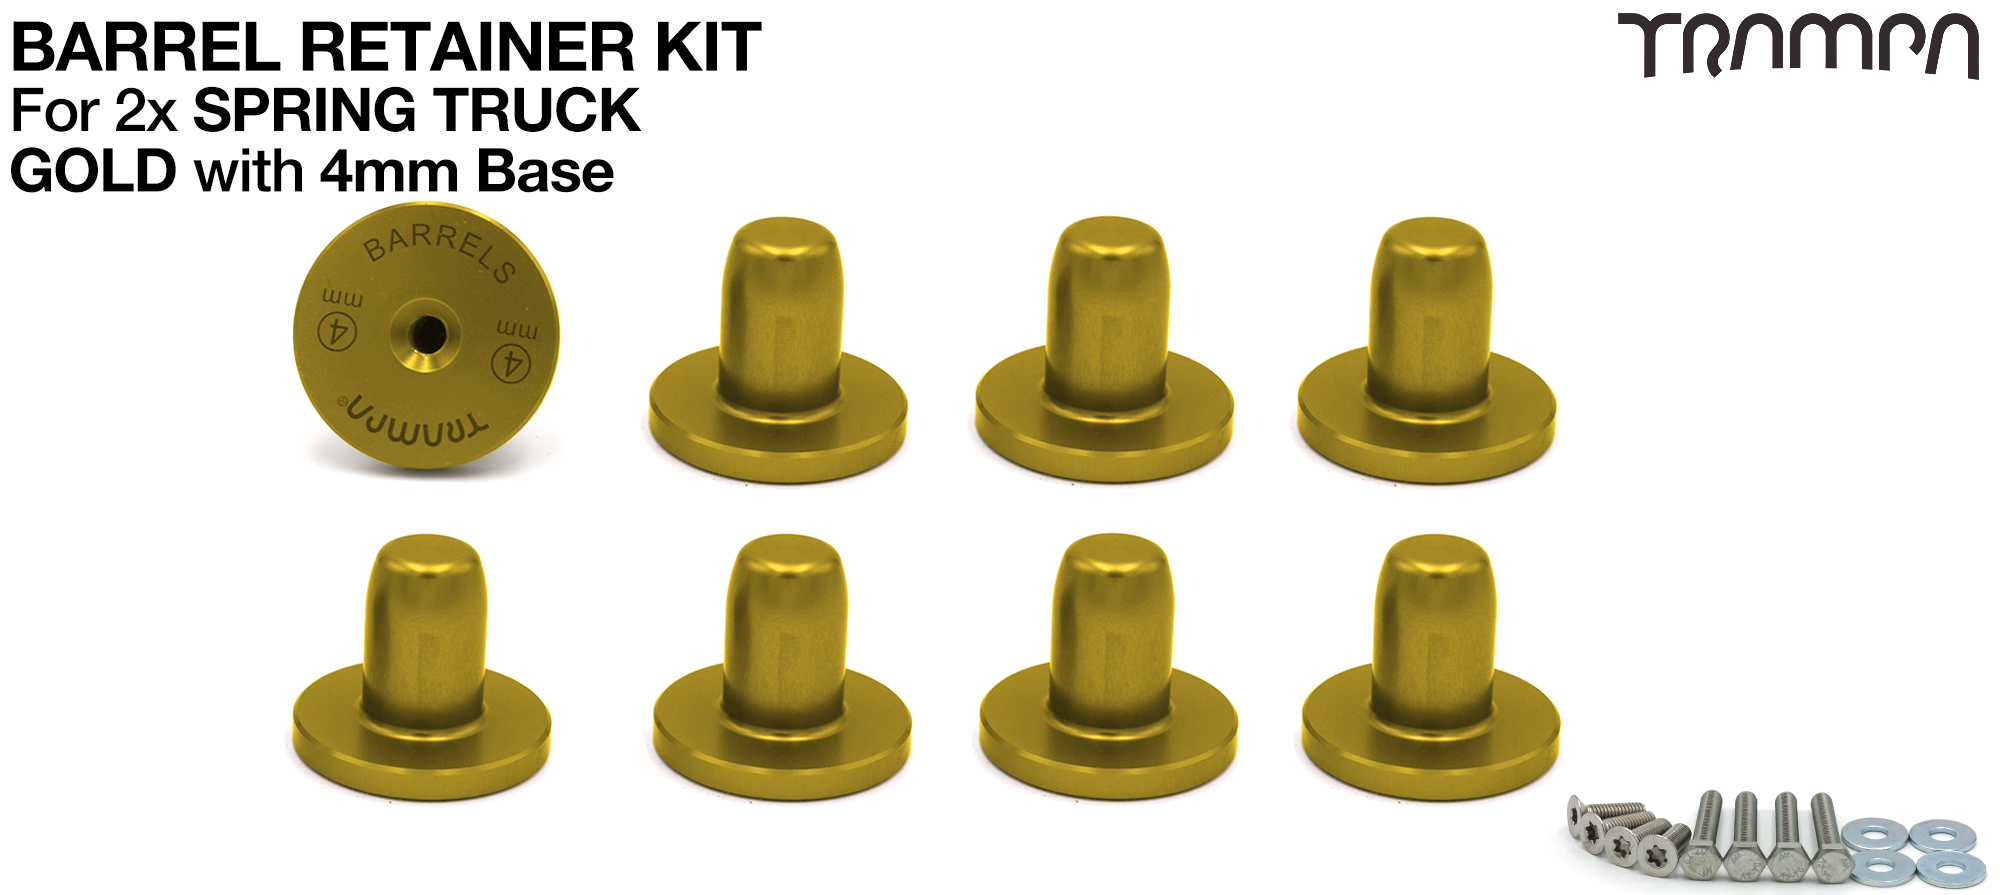 GOLD 4mm Barrel Retainers x8